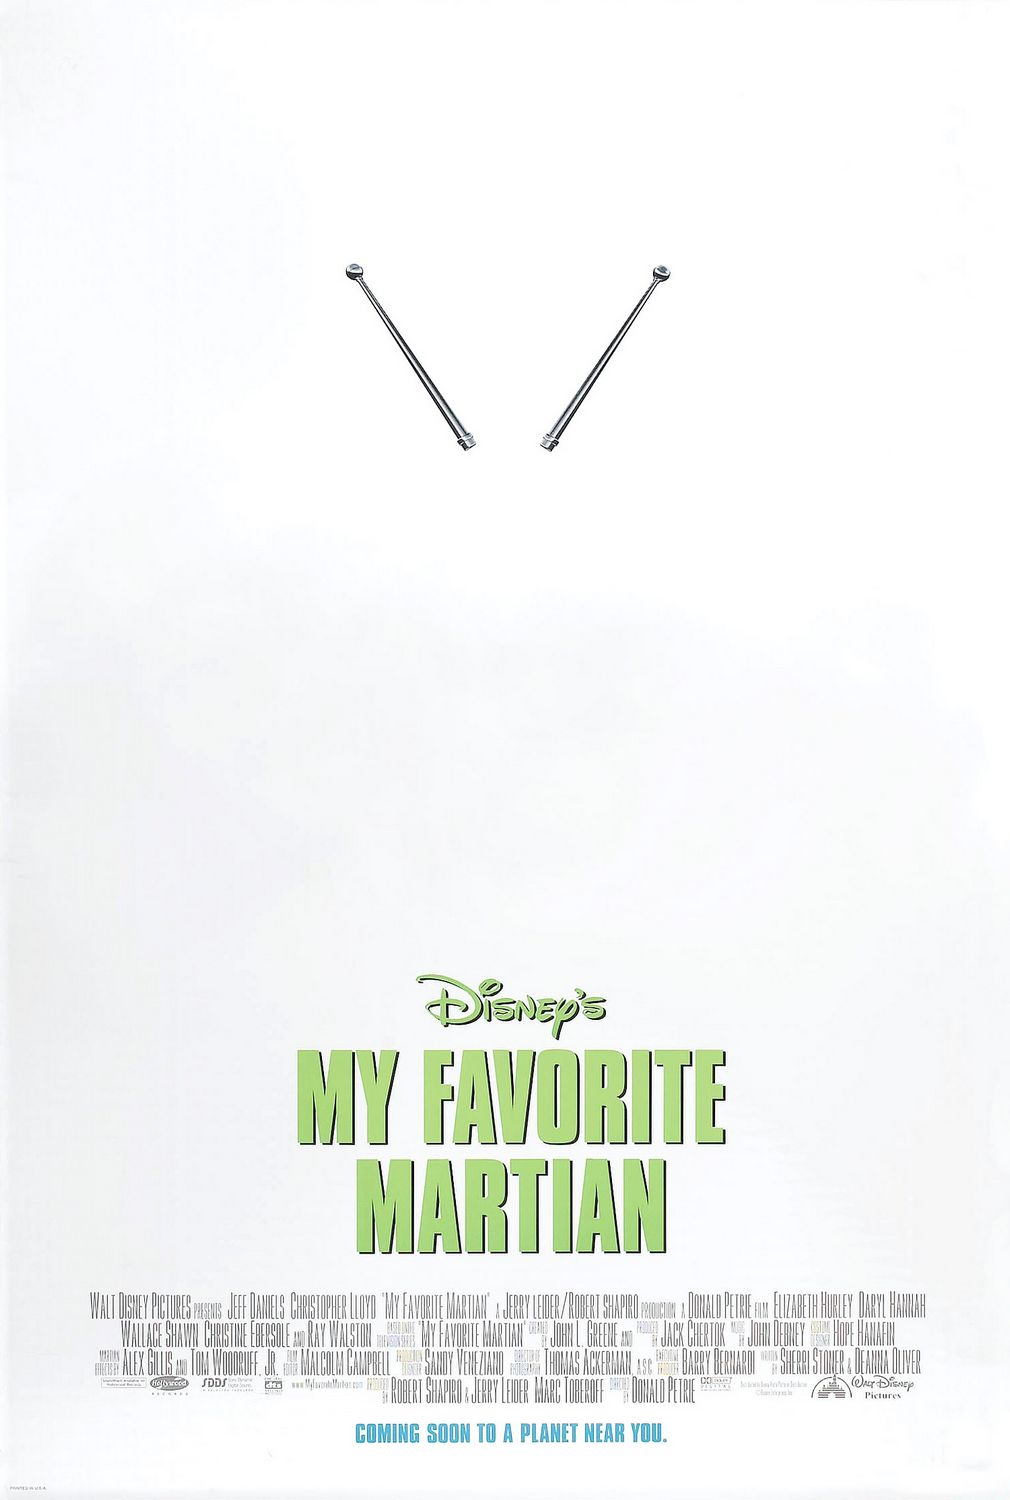 martian movie online free watch with subtitles